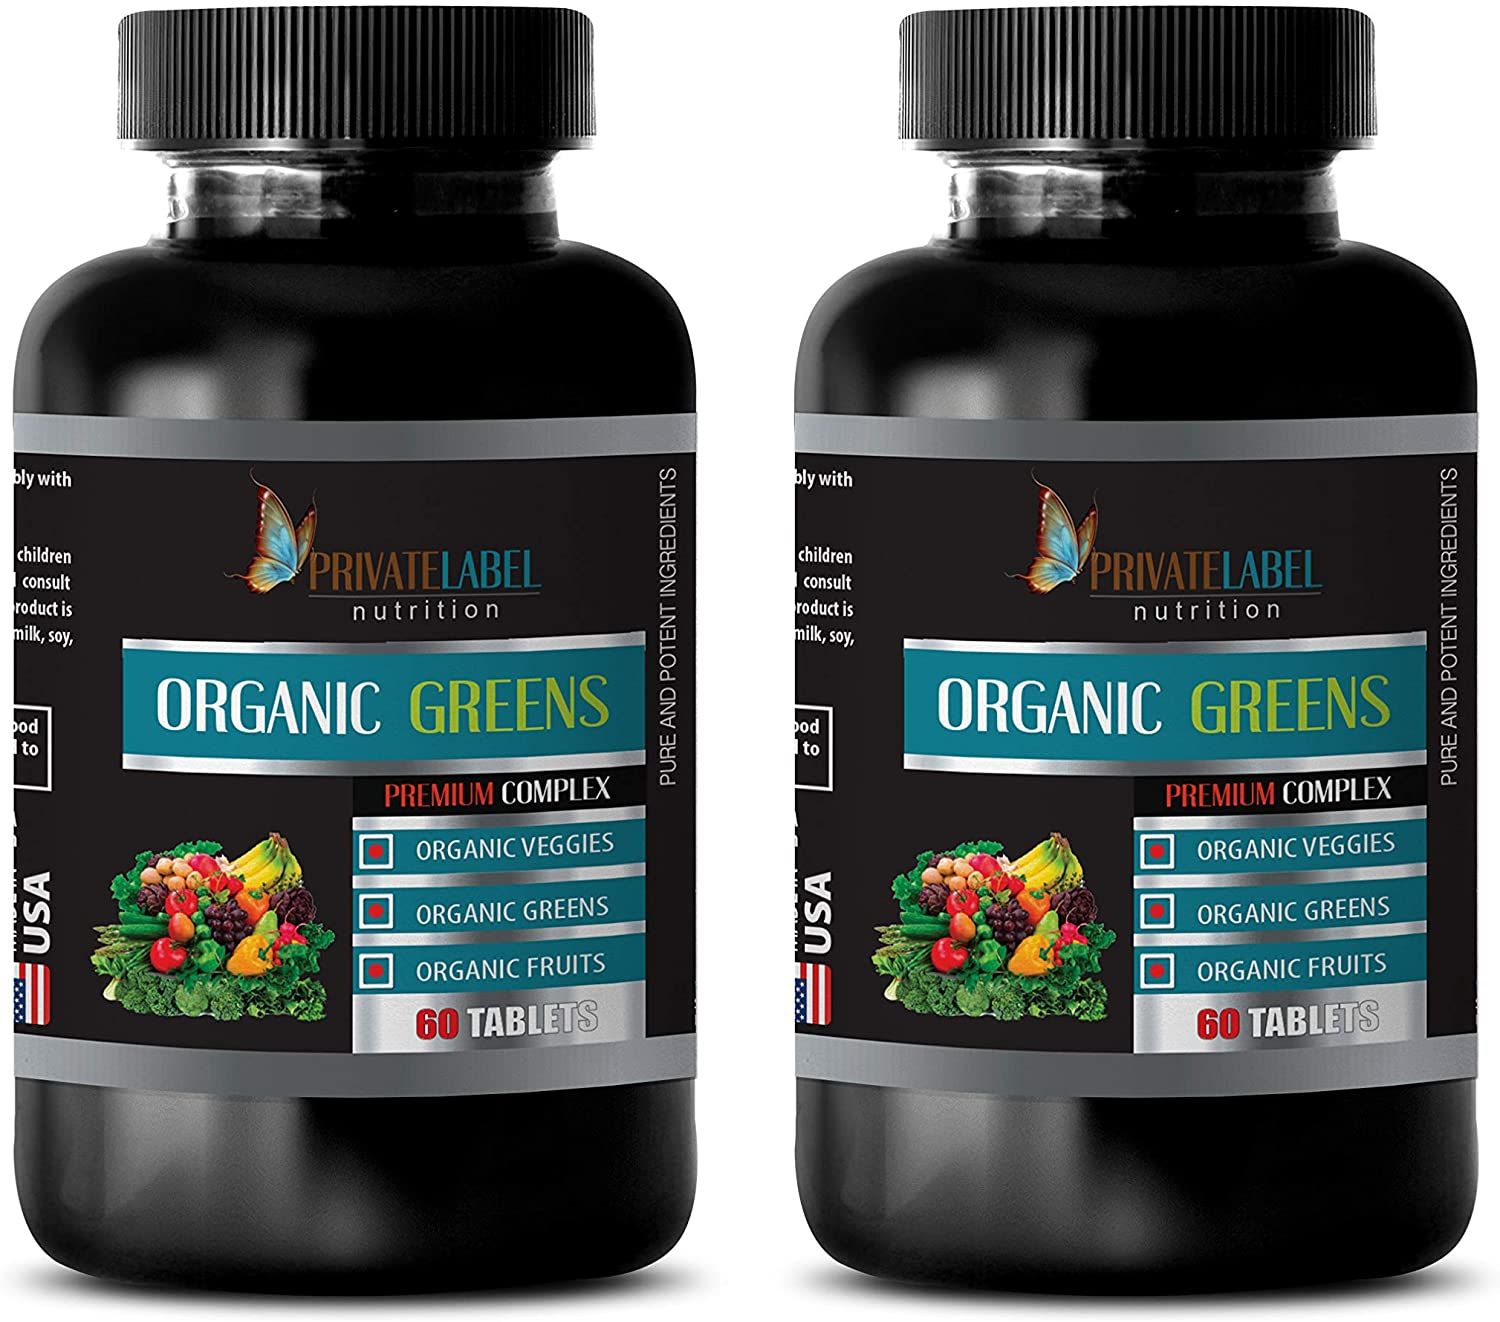 Brain and Memory Power Boost - Organic Greens Premium Complex - Strawberry Extract Natural - 2 Bottles 120 Tablets